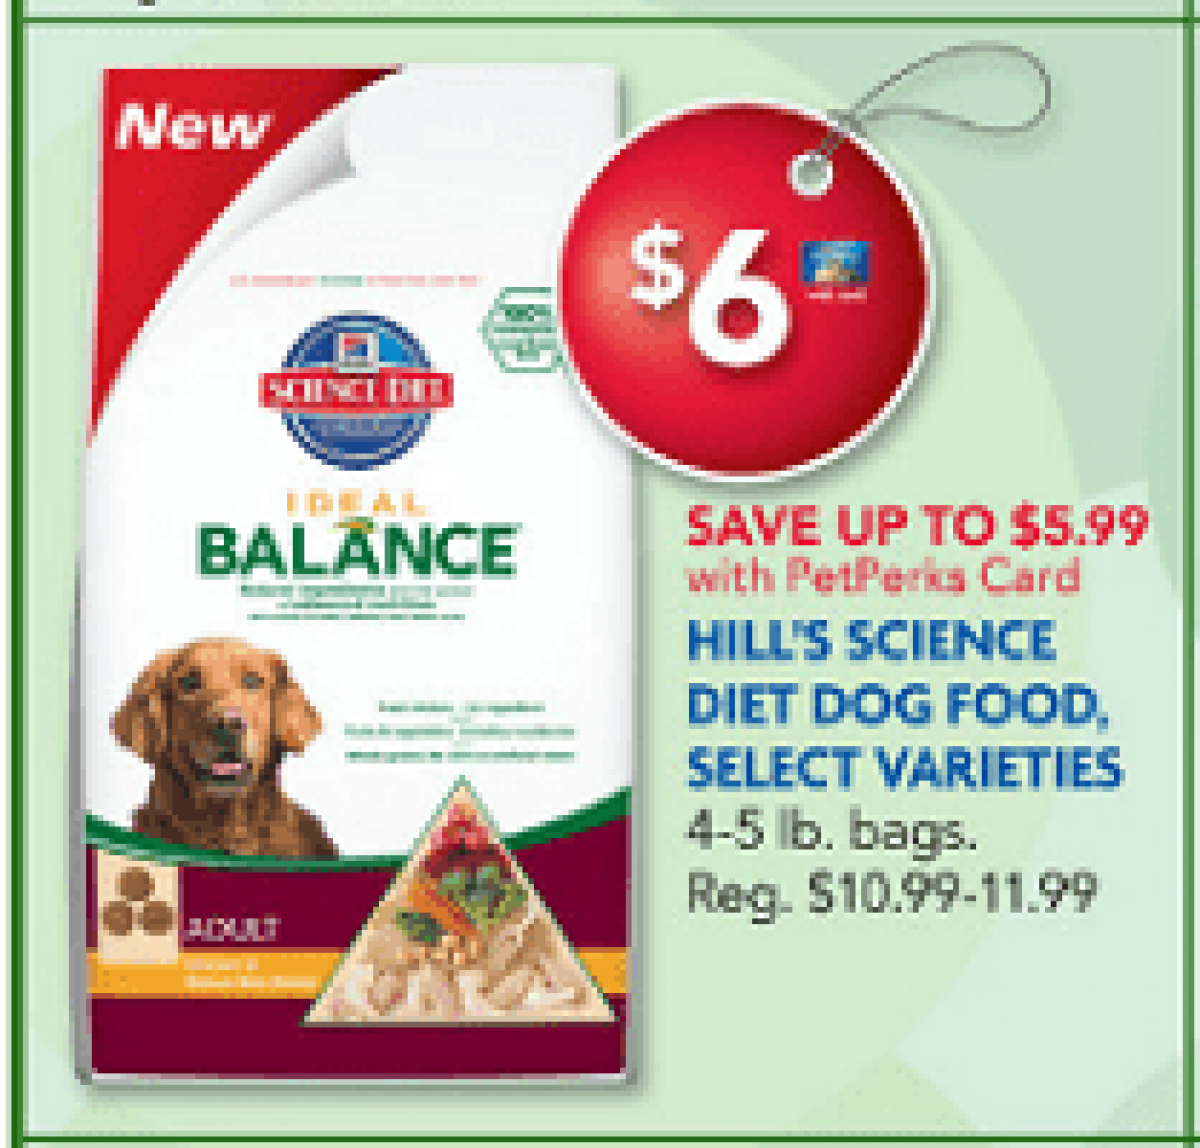 Science Diet Dog Food: FREE 5 Lb Bag After Printable Coupon